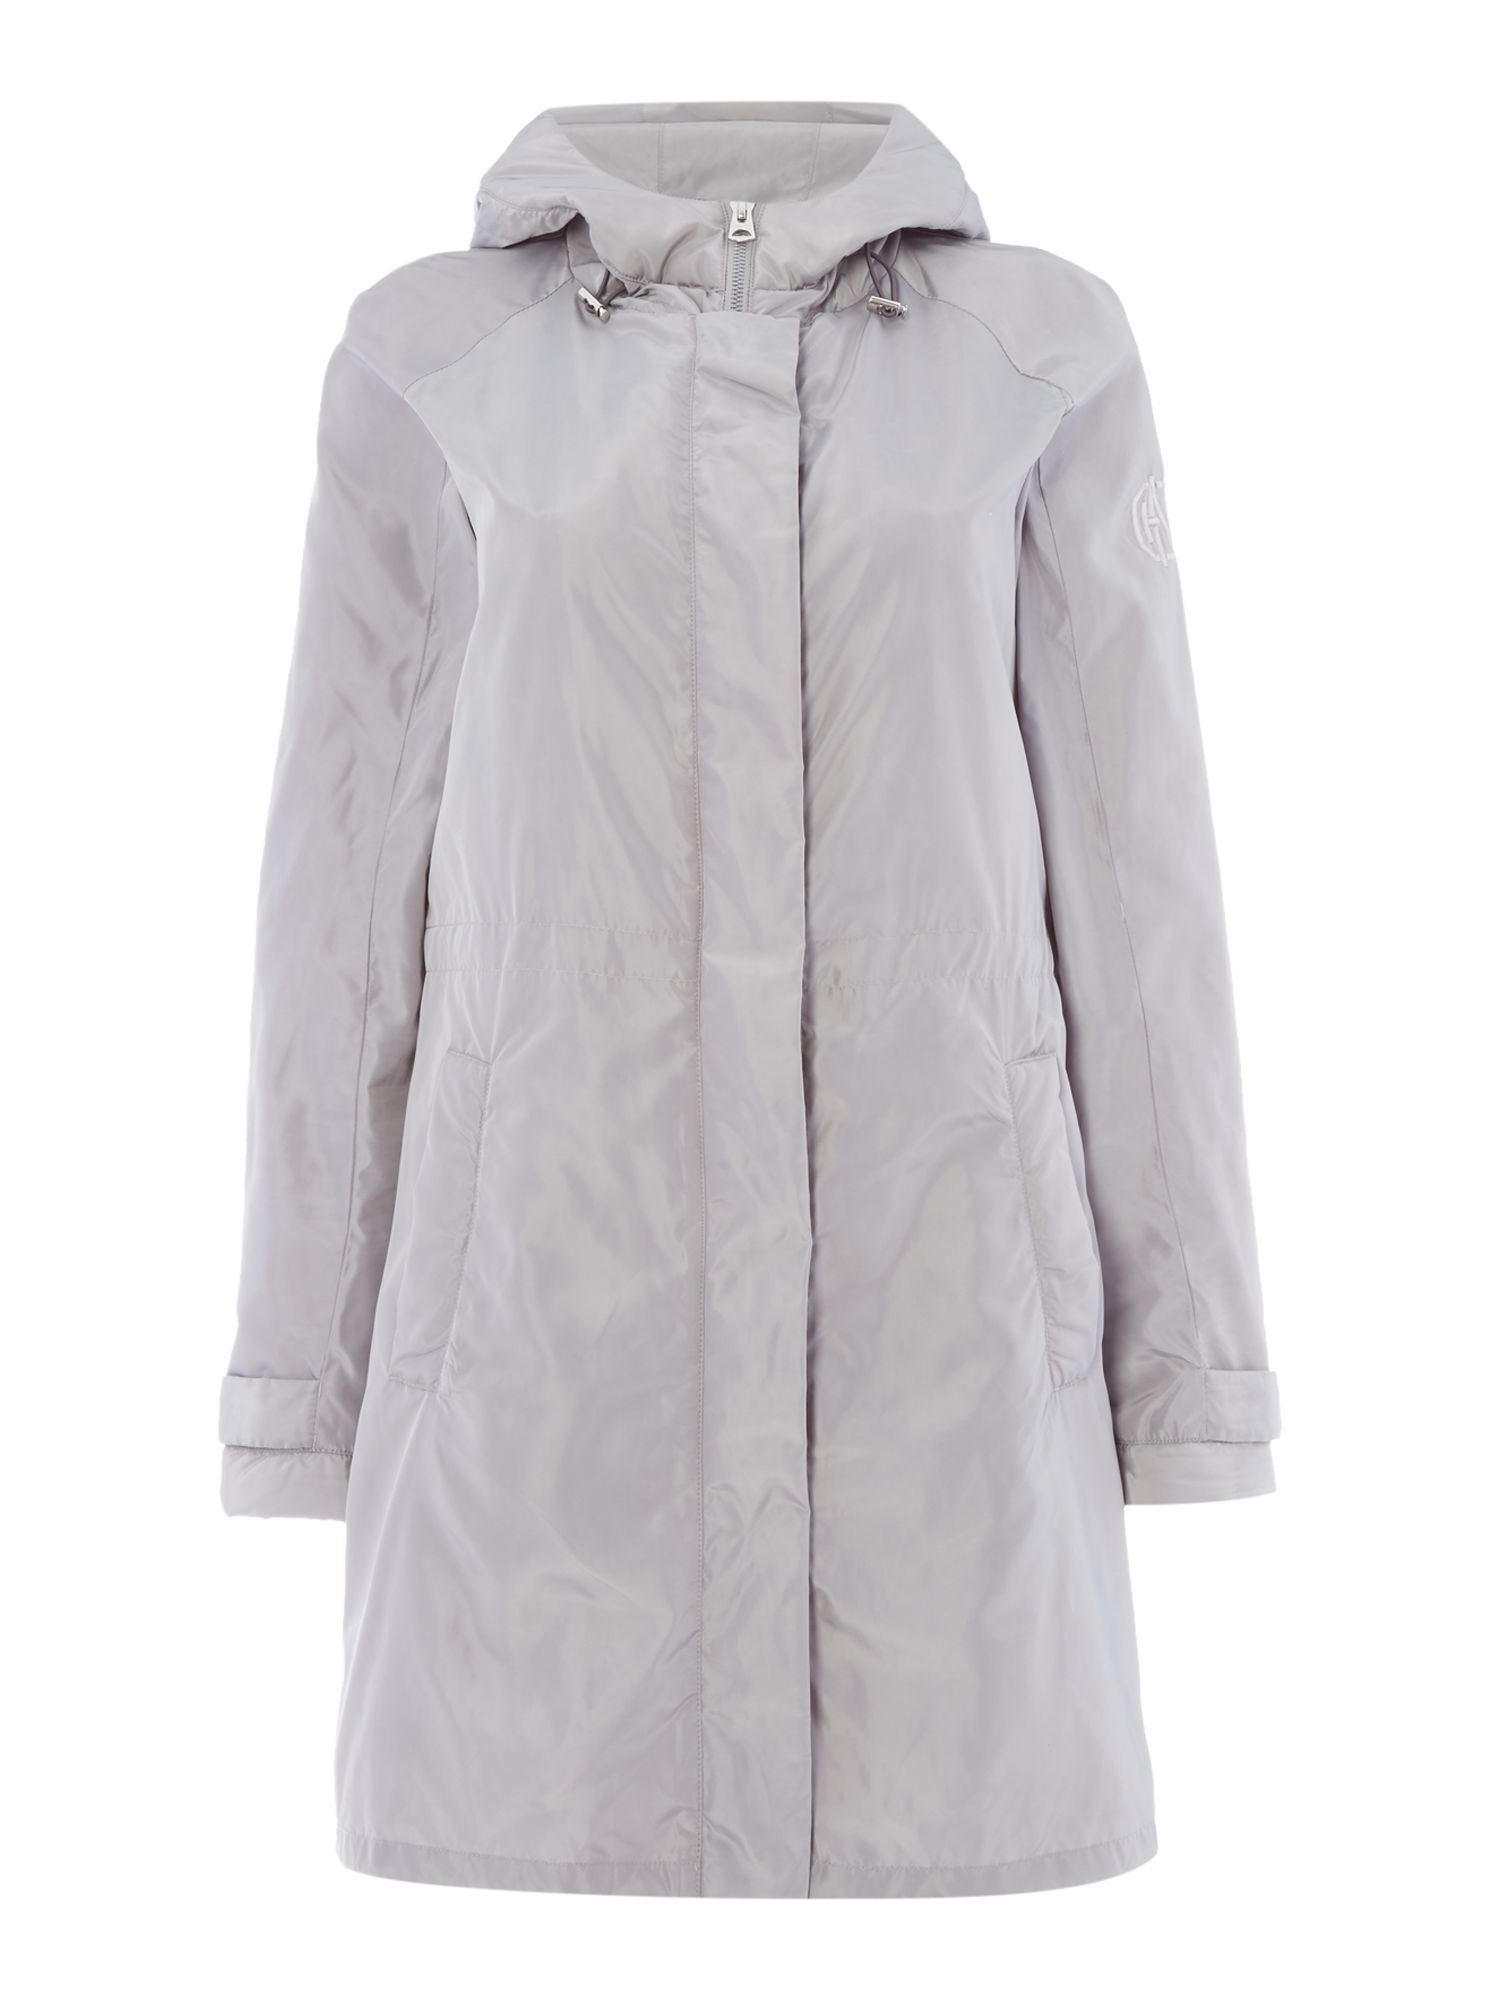 Gant Light weight parka, Grey